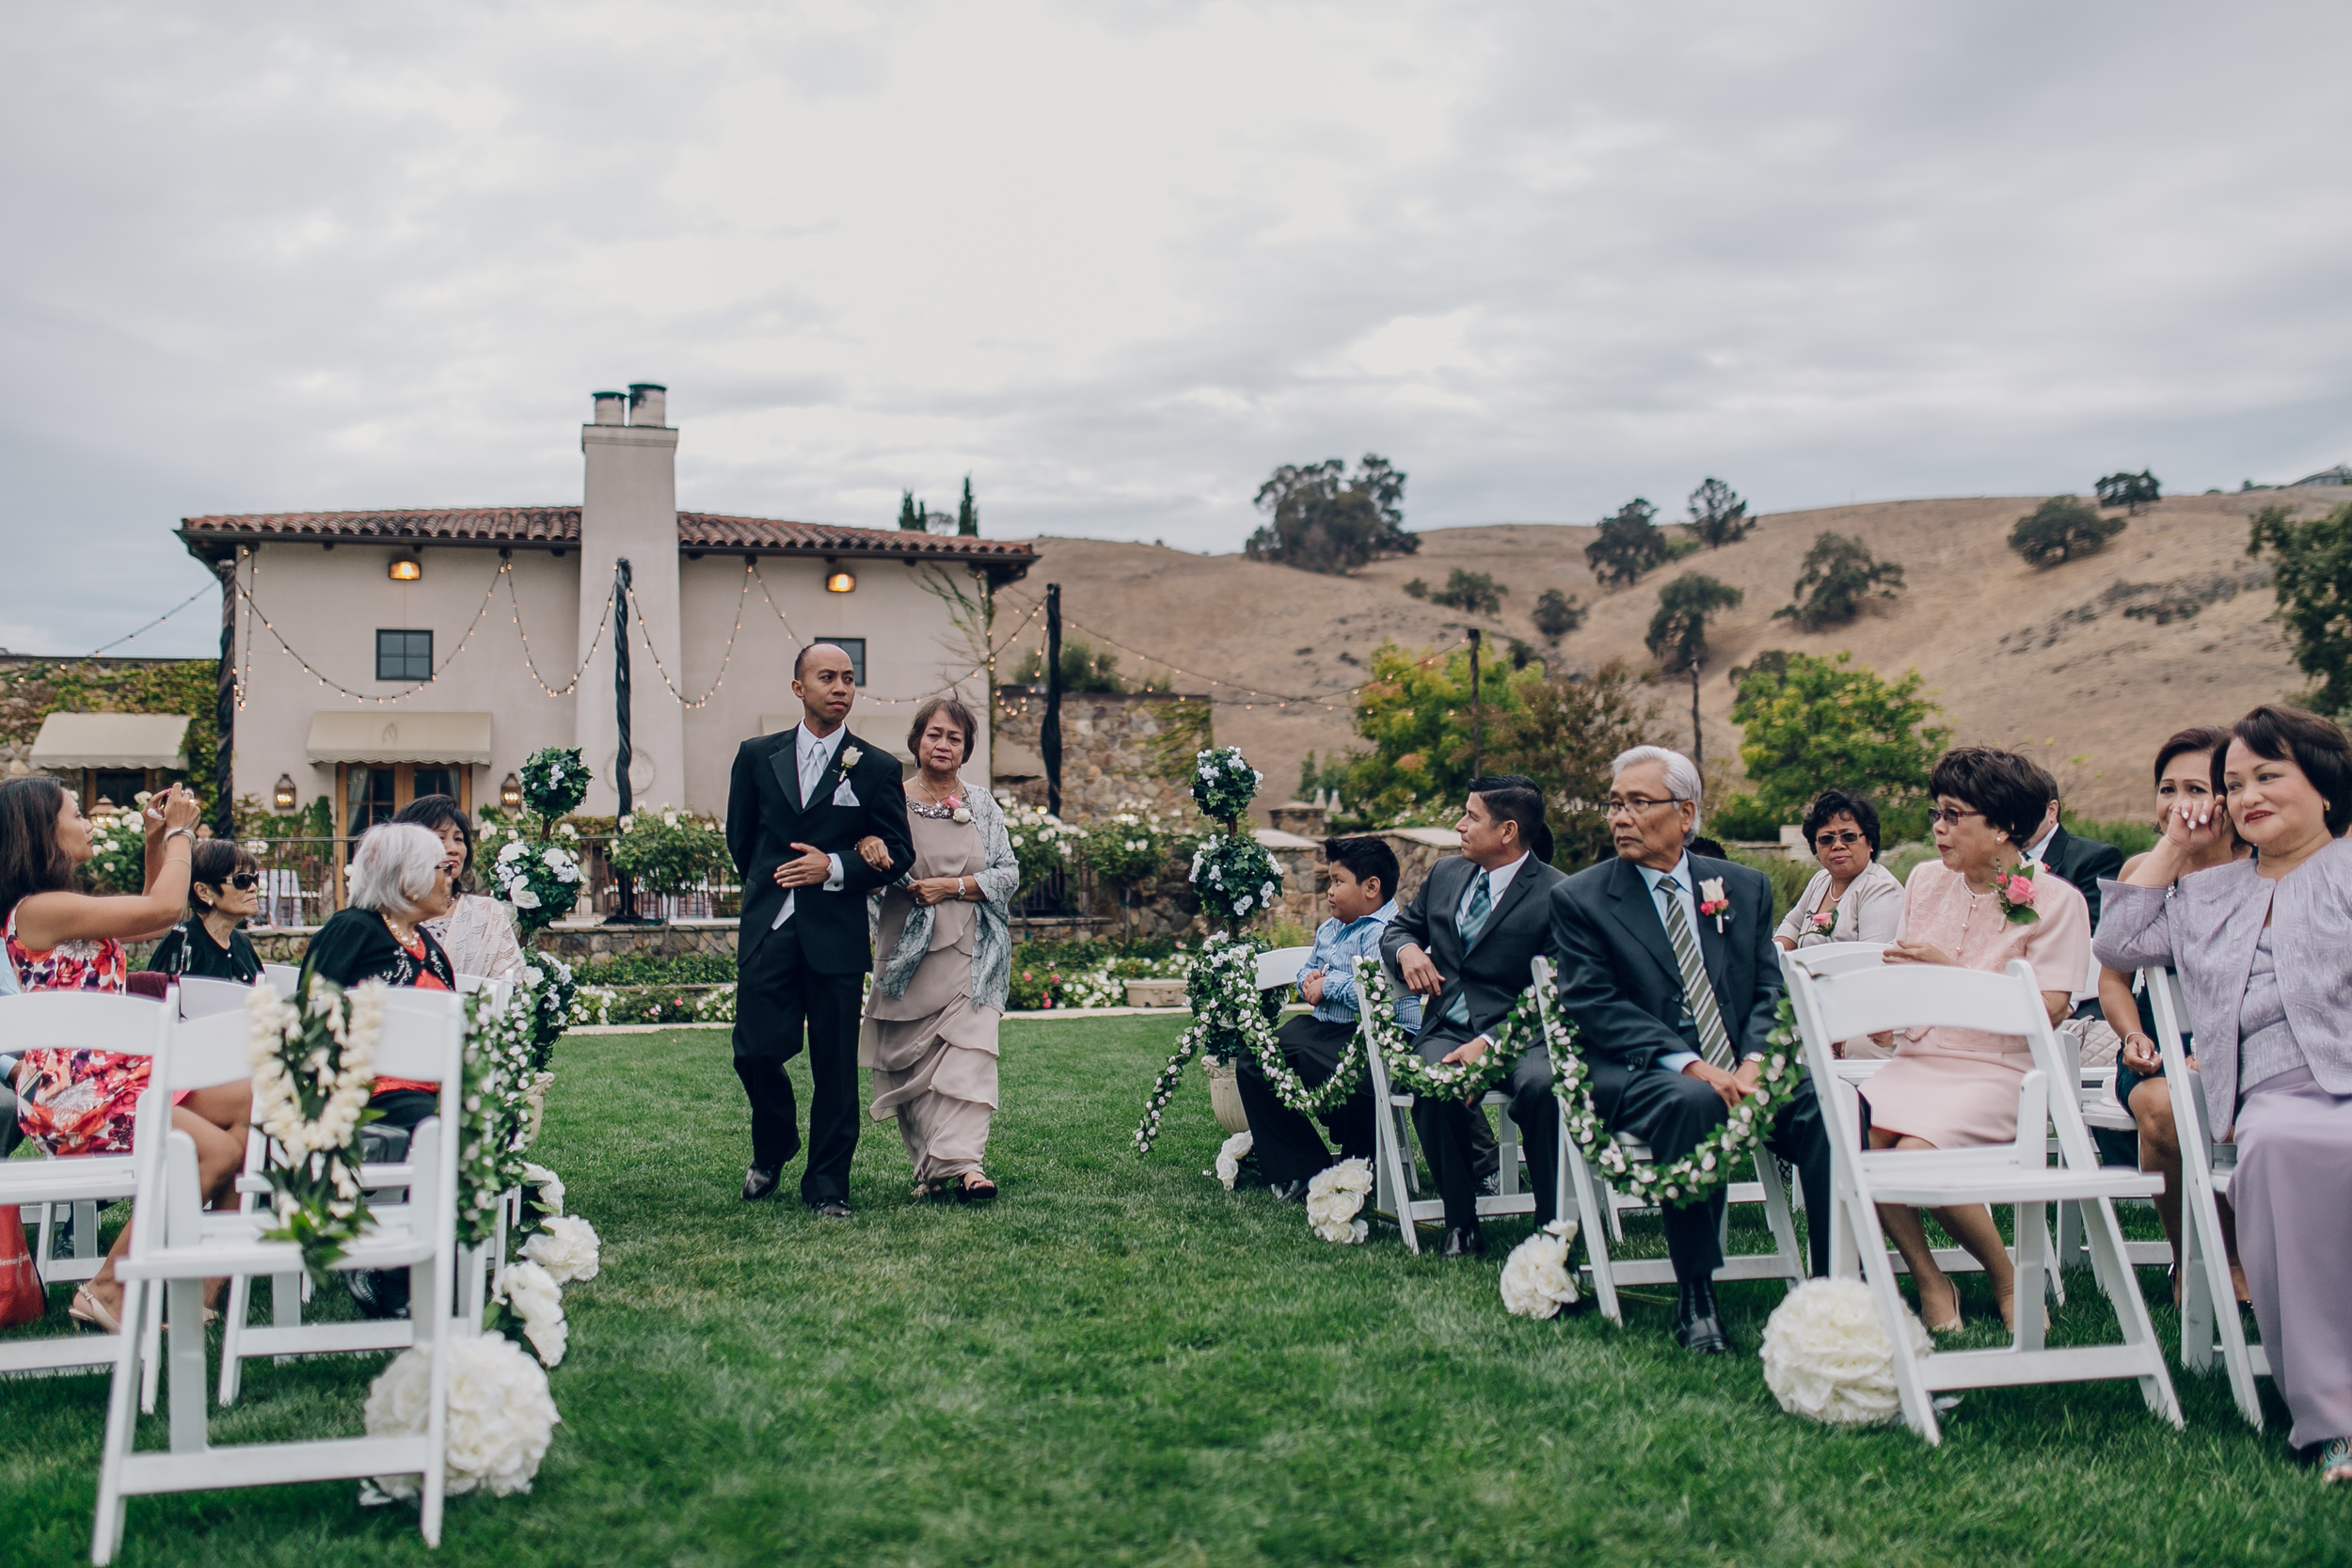 Shiela + Lester's Wedding 9-30-15 645.jpg